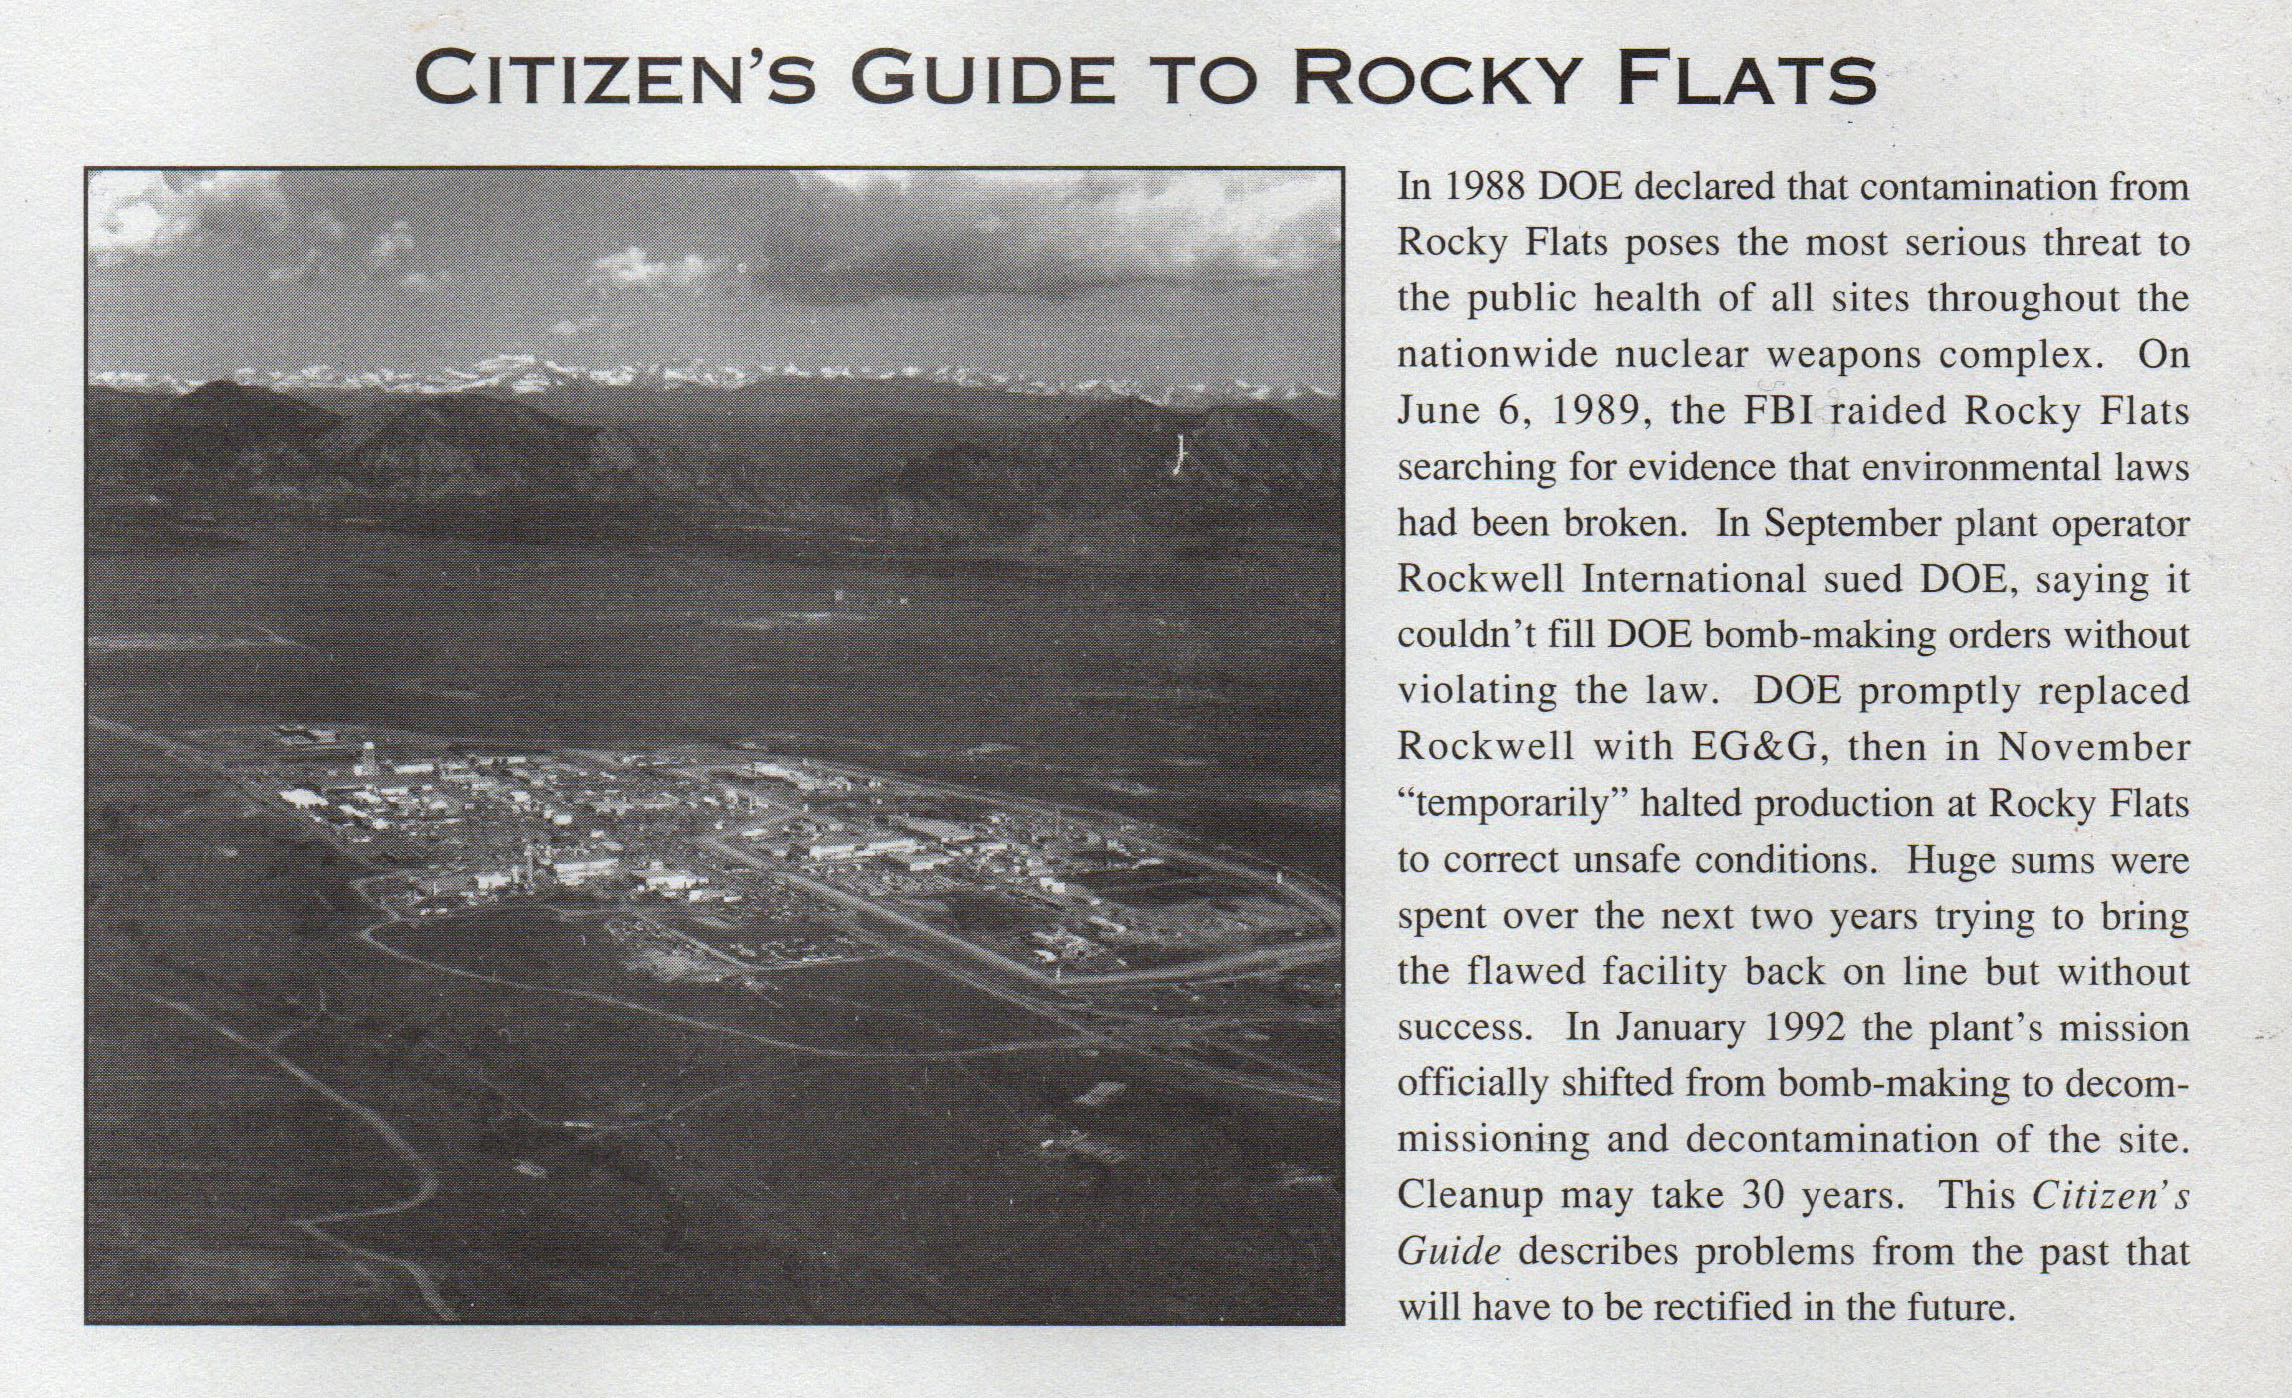 Citizen's Guide Picture